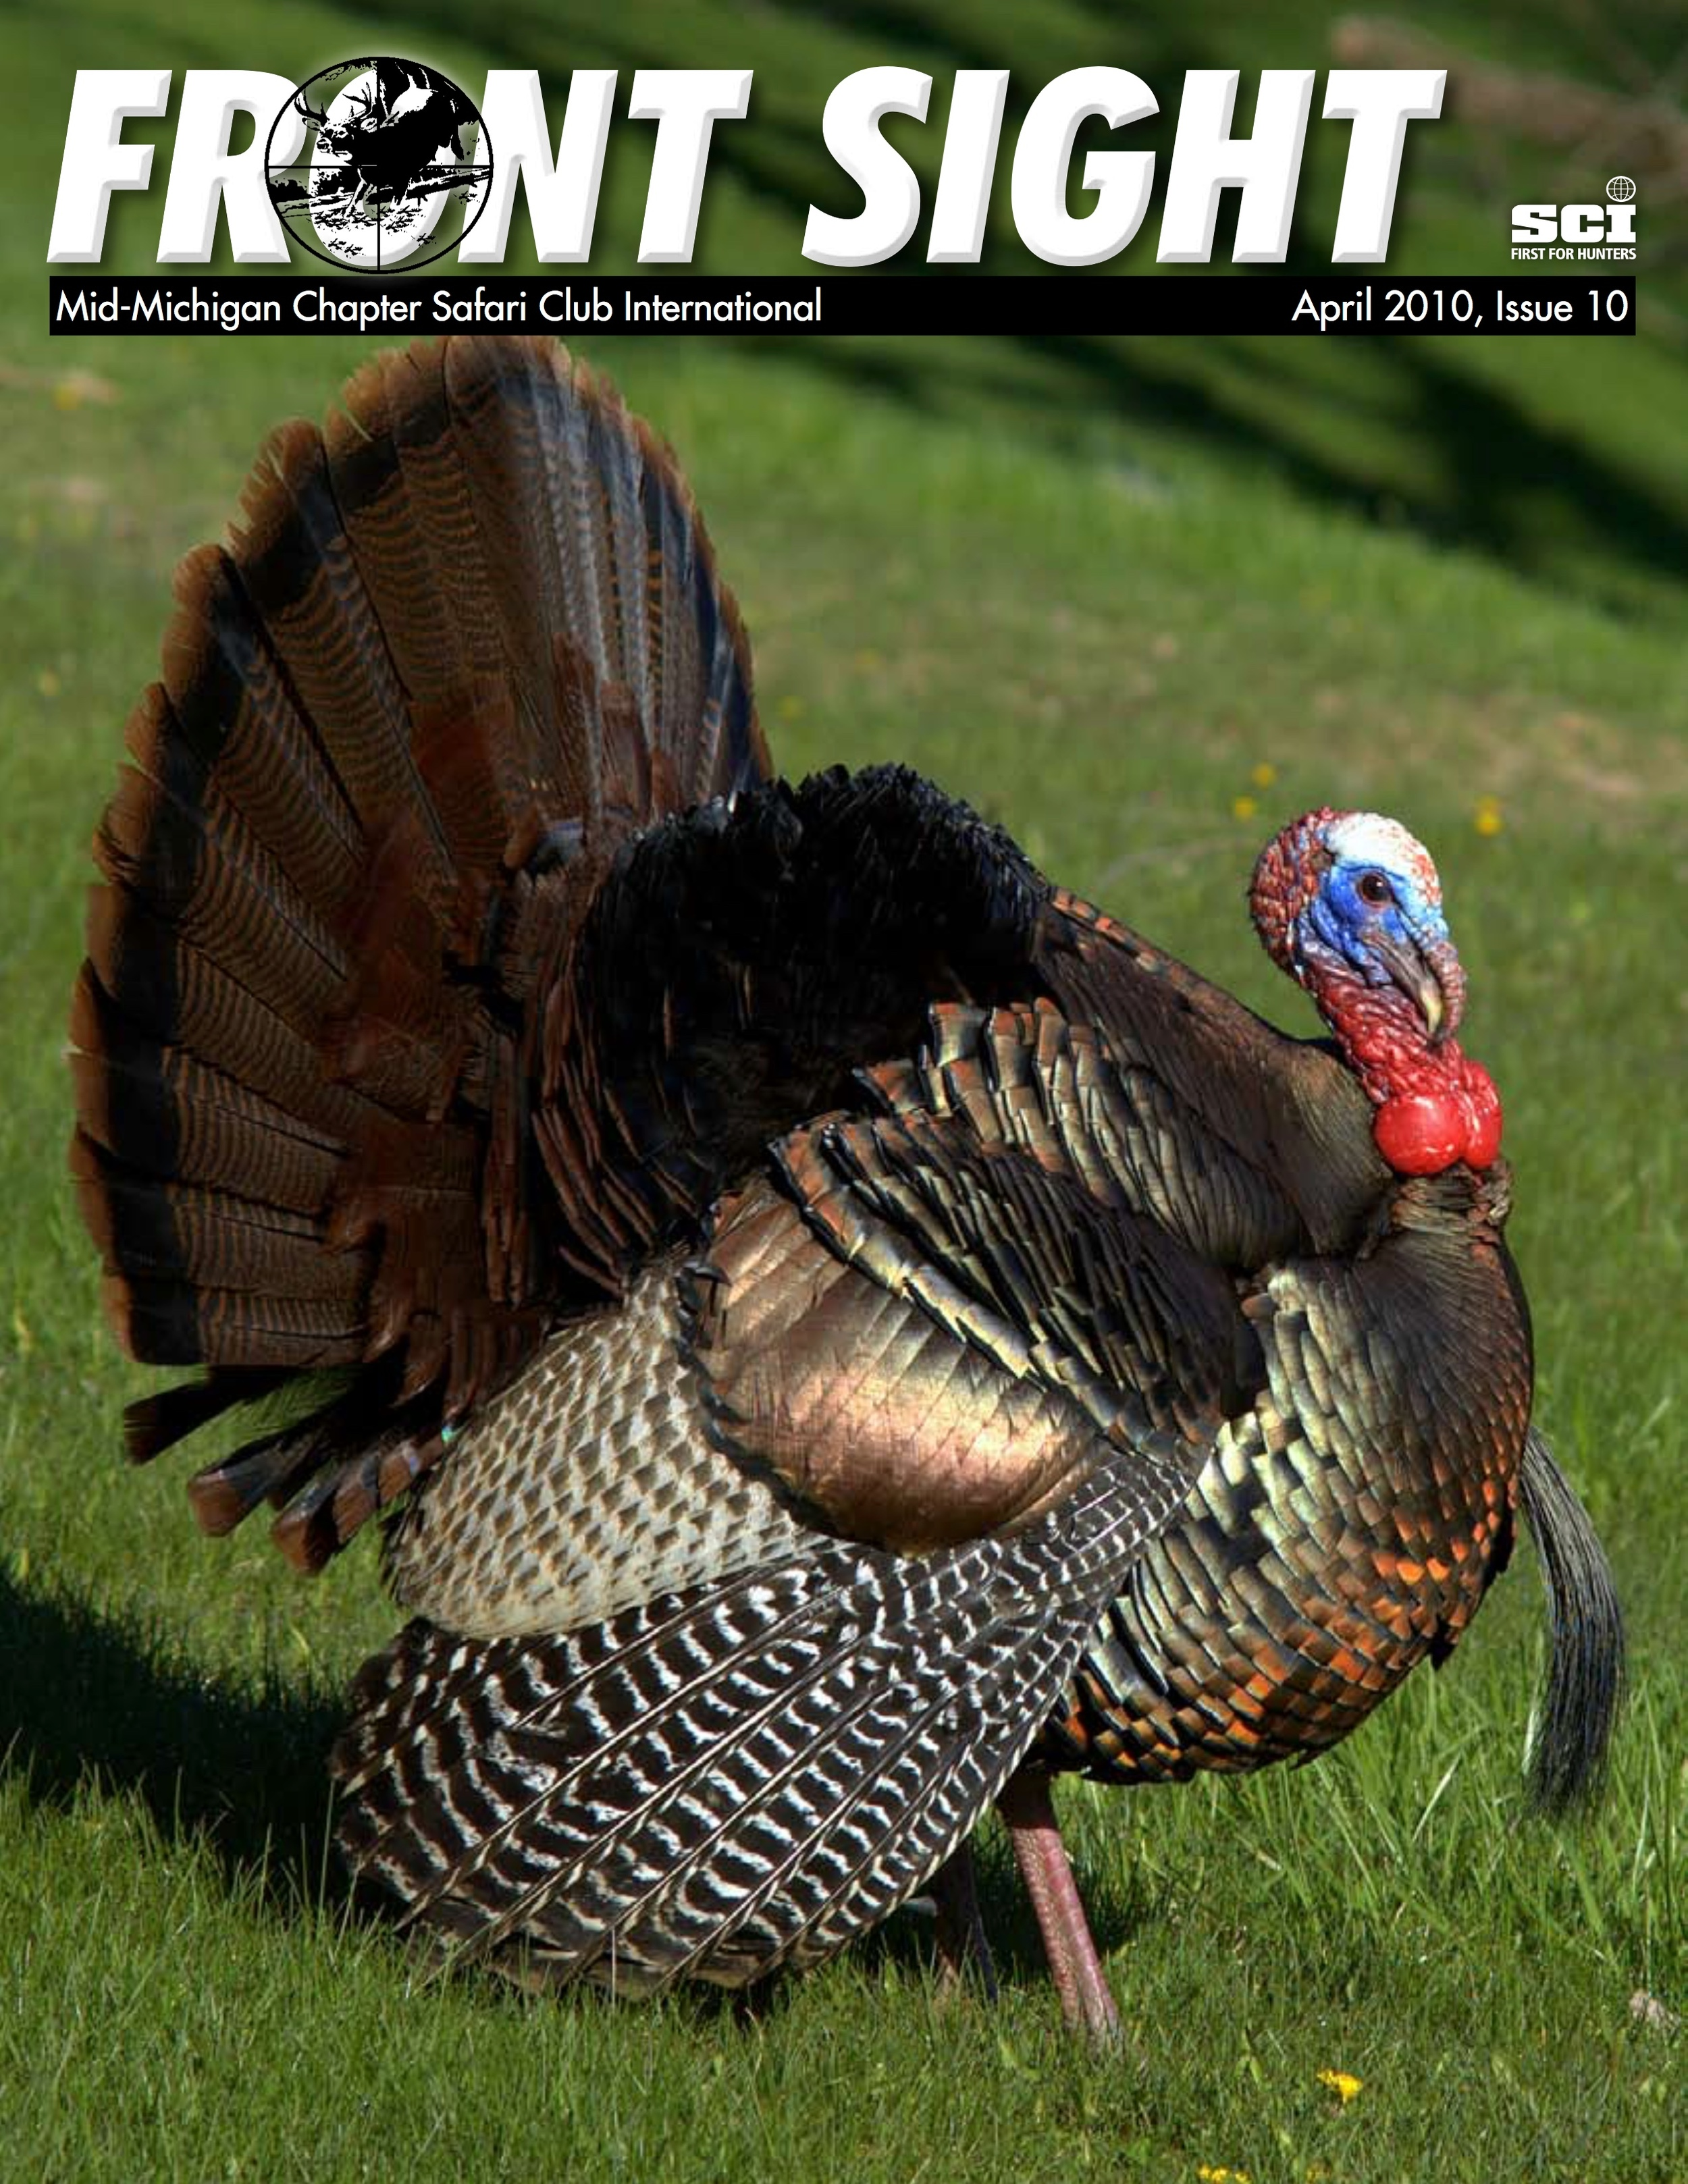 Issue 10, April 2010